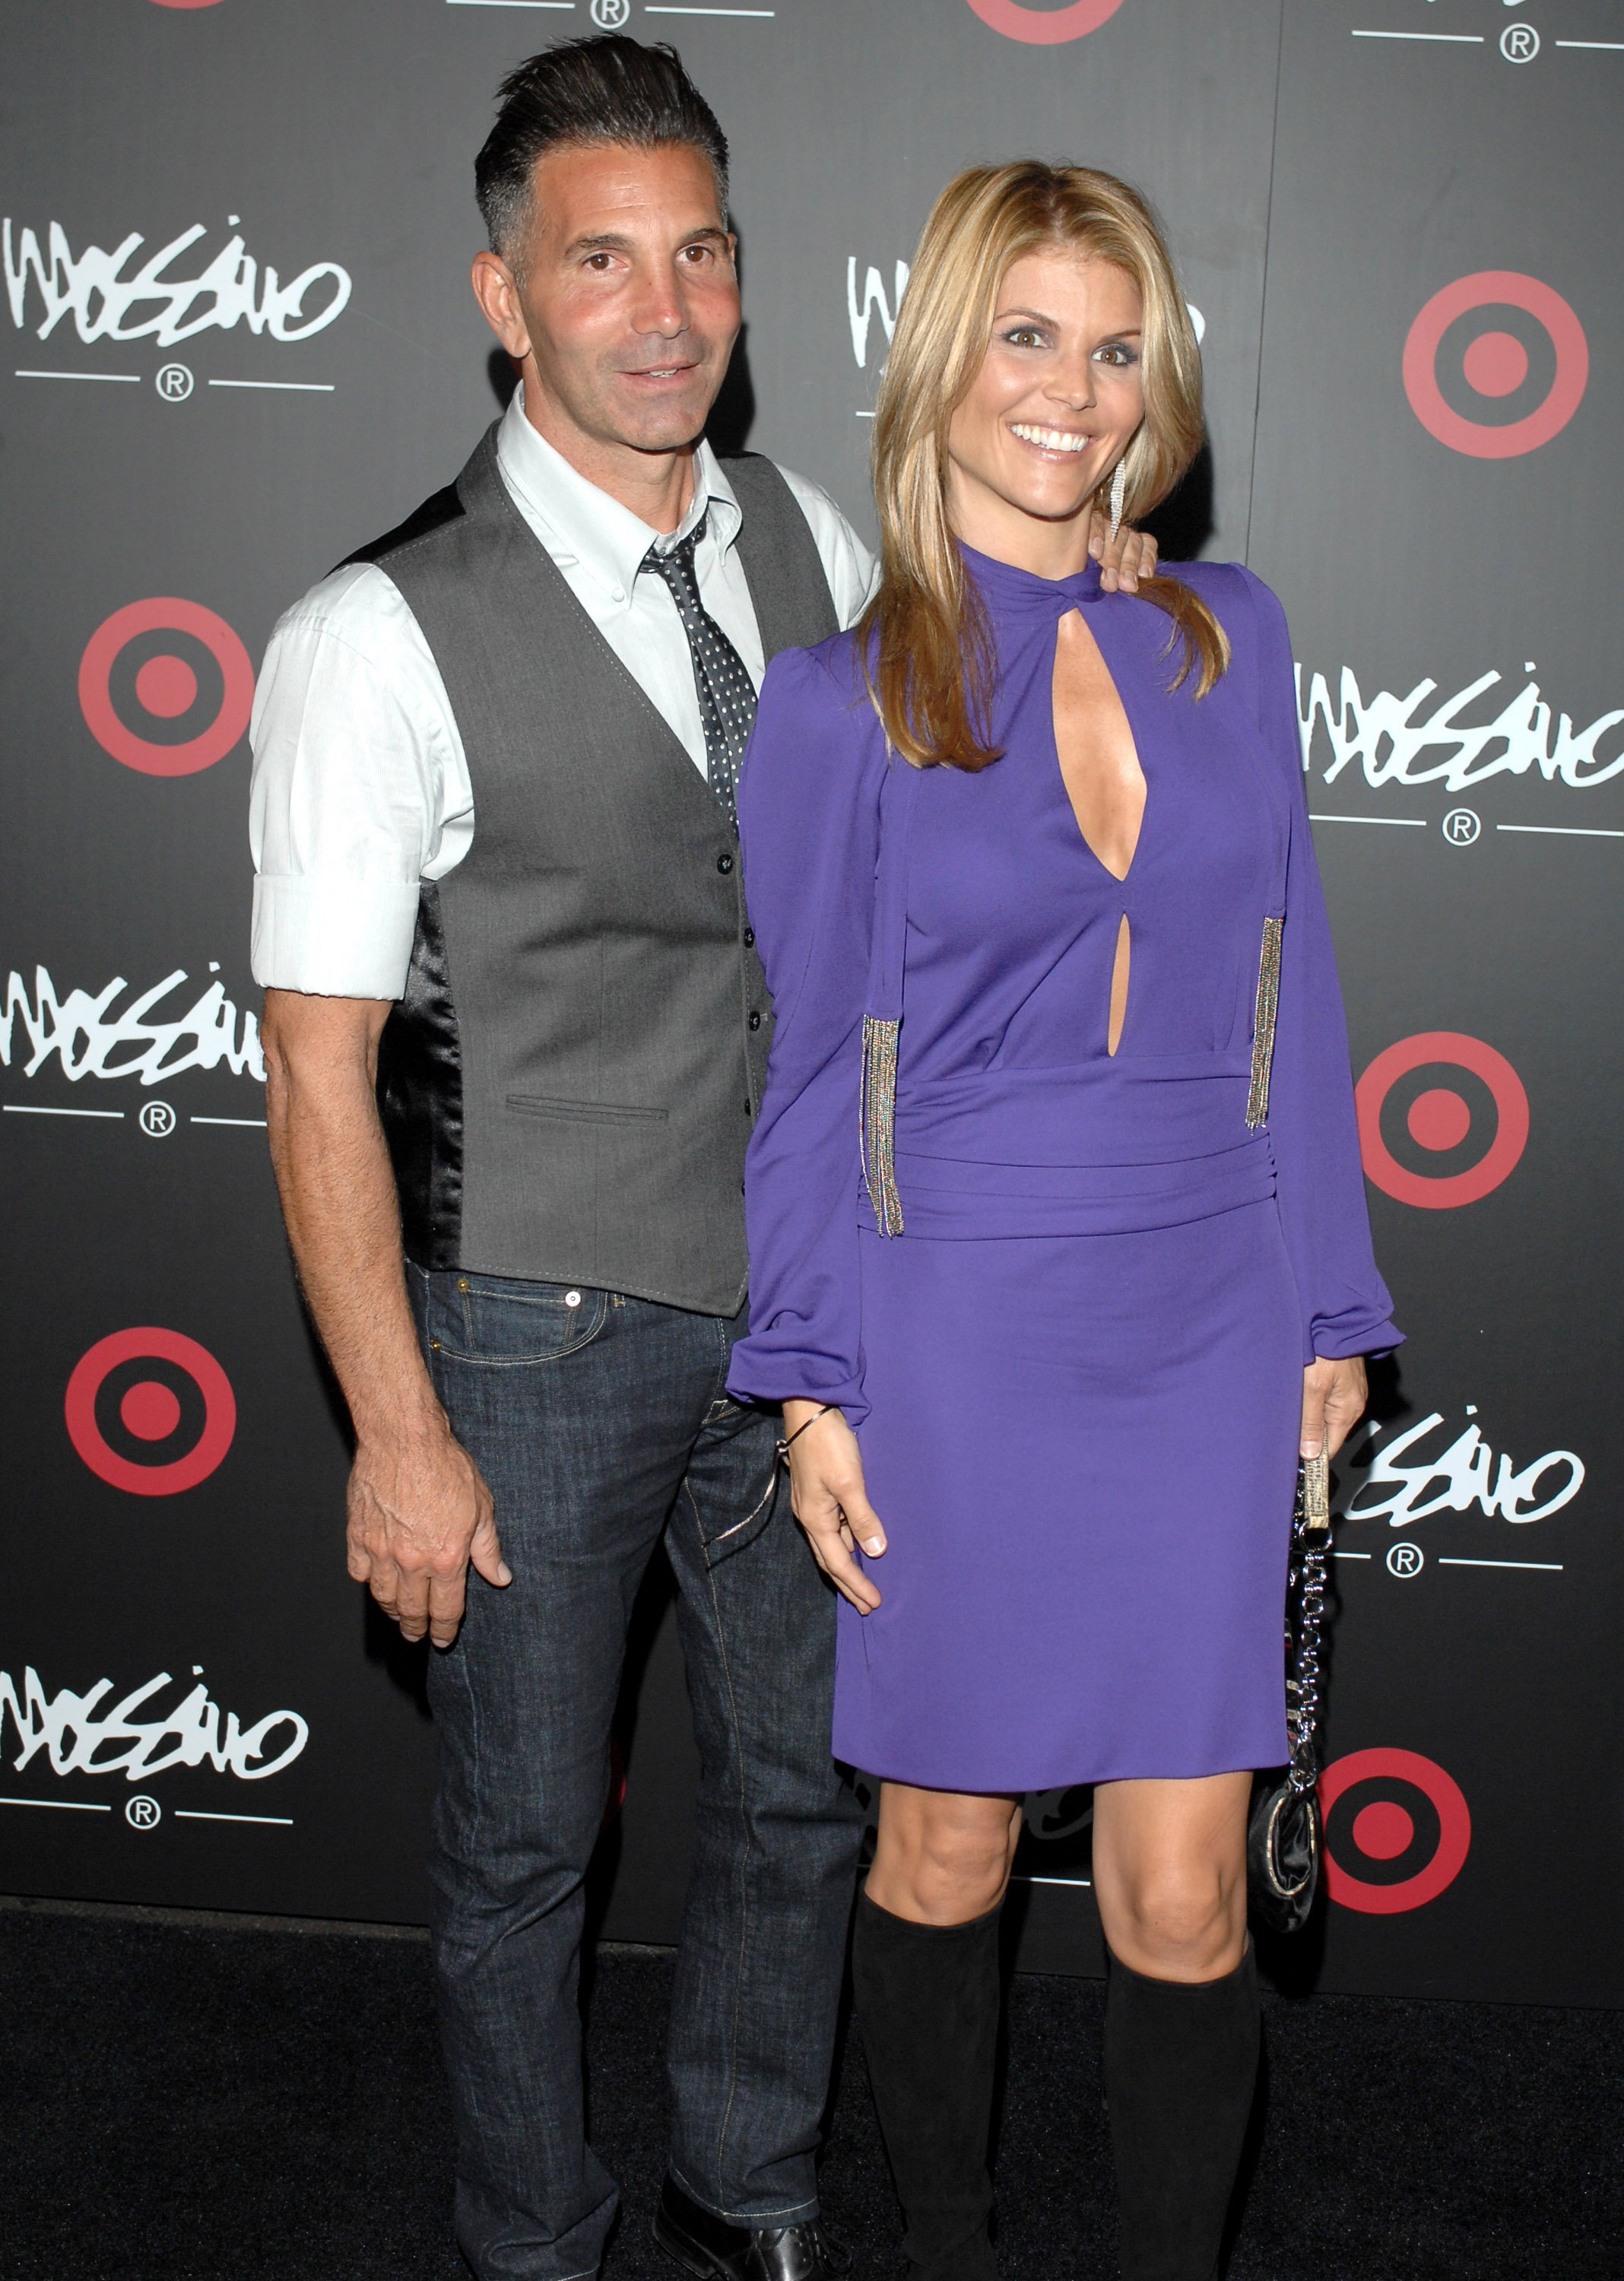 Lori Loughlin and her husband Mossimo Giannulli attends LA Fashion Week Party on October 2006 | Photo: Getty Images